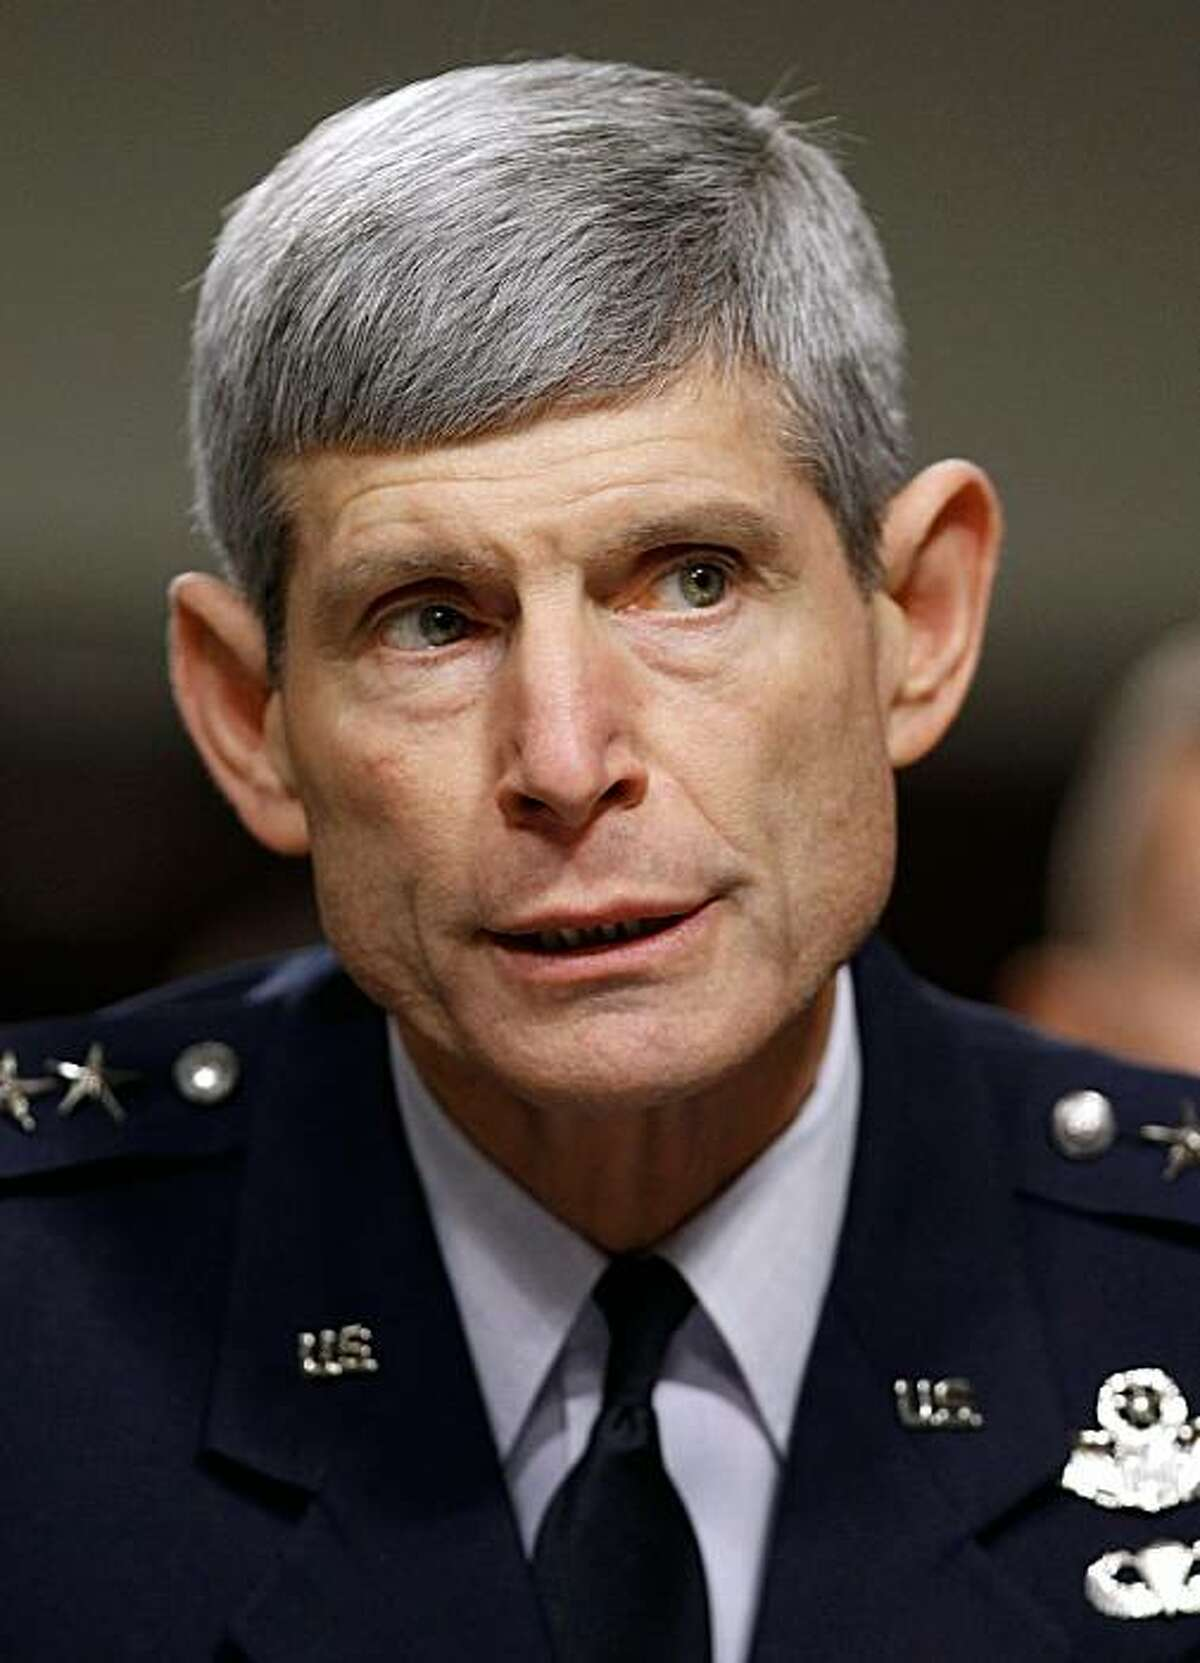 """WASHINGTON, DC - DECEMBER 03: Air Force Chief of Staff Gen. Norton Schwartz testifies before the Senate Armed Services Committee about the military's """"don't ask, don't tell"""" policy on Capitol Hill December 3, 2010 in Washington, DC. U.S. Defense Secretary Robert Gates announced earlier this week that a comprehensive study found that allowing gay men and women to serve openly in the United States armed forces presents a low risk to the military's effectiveness, even at a time of war, and that 70 percent of service members believe that the impact of repealing the law would be either positive, mixed or of no consequence at all."""